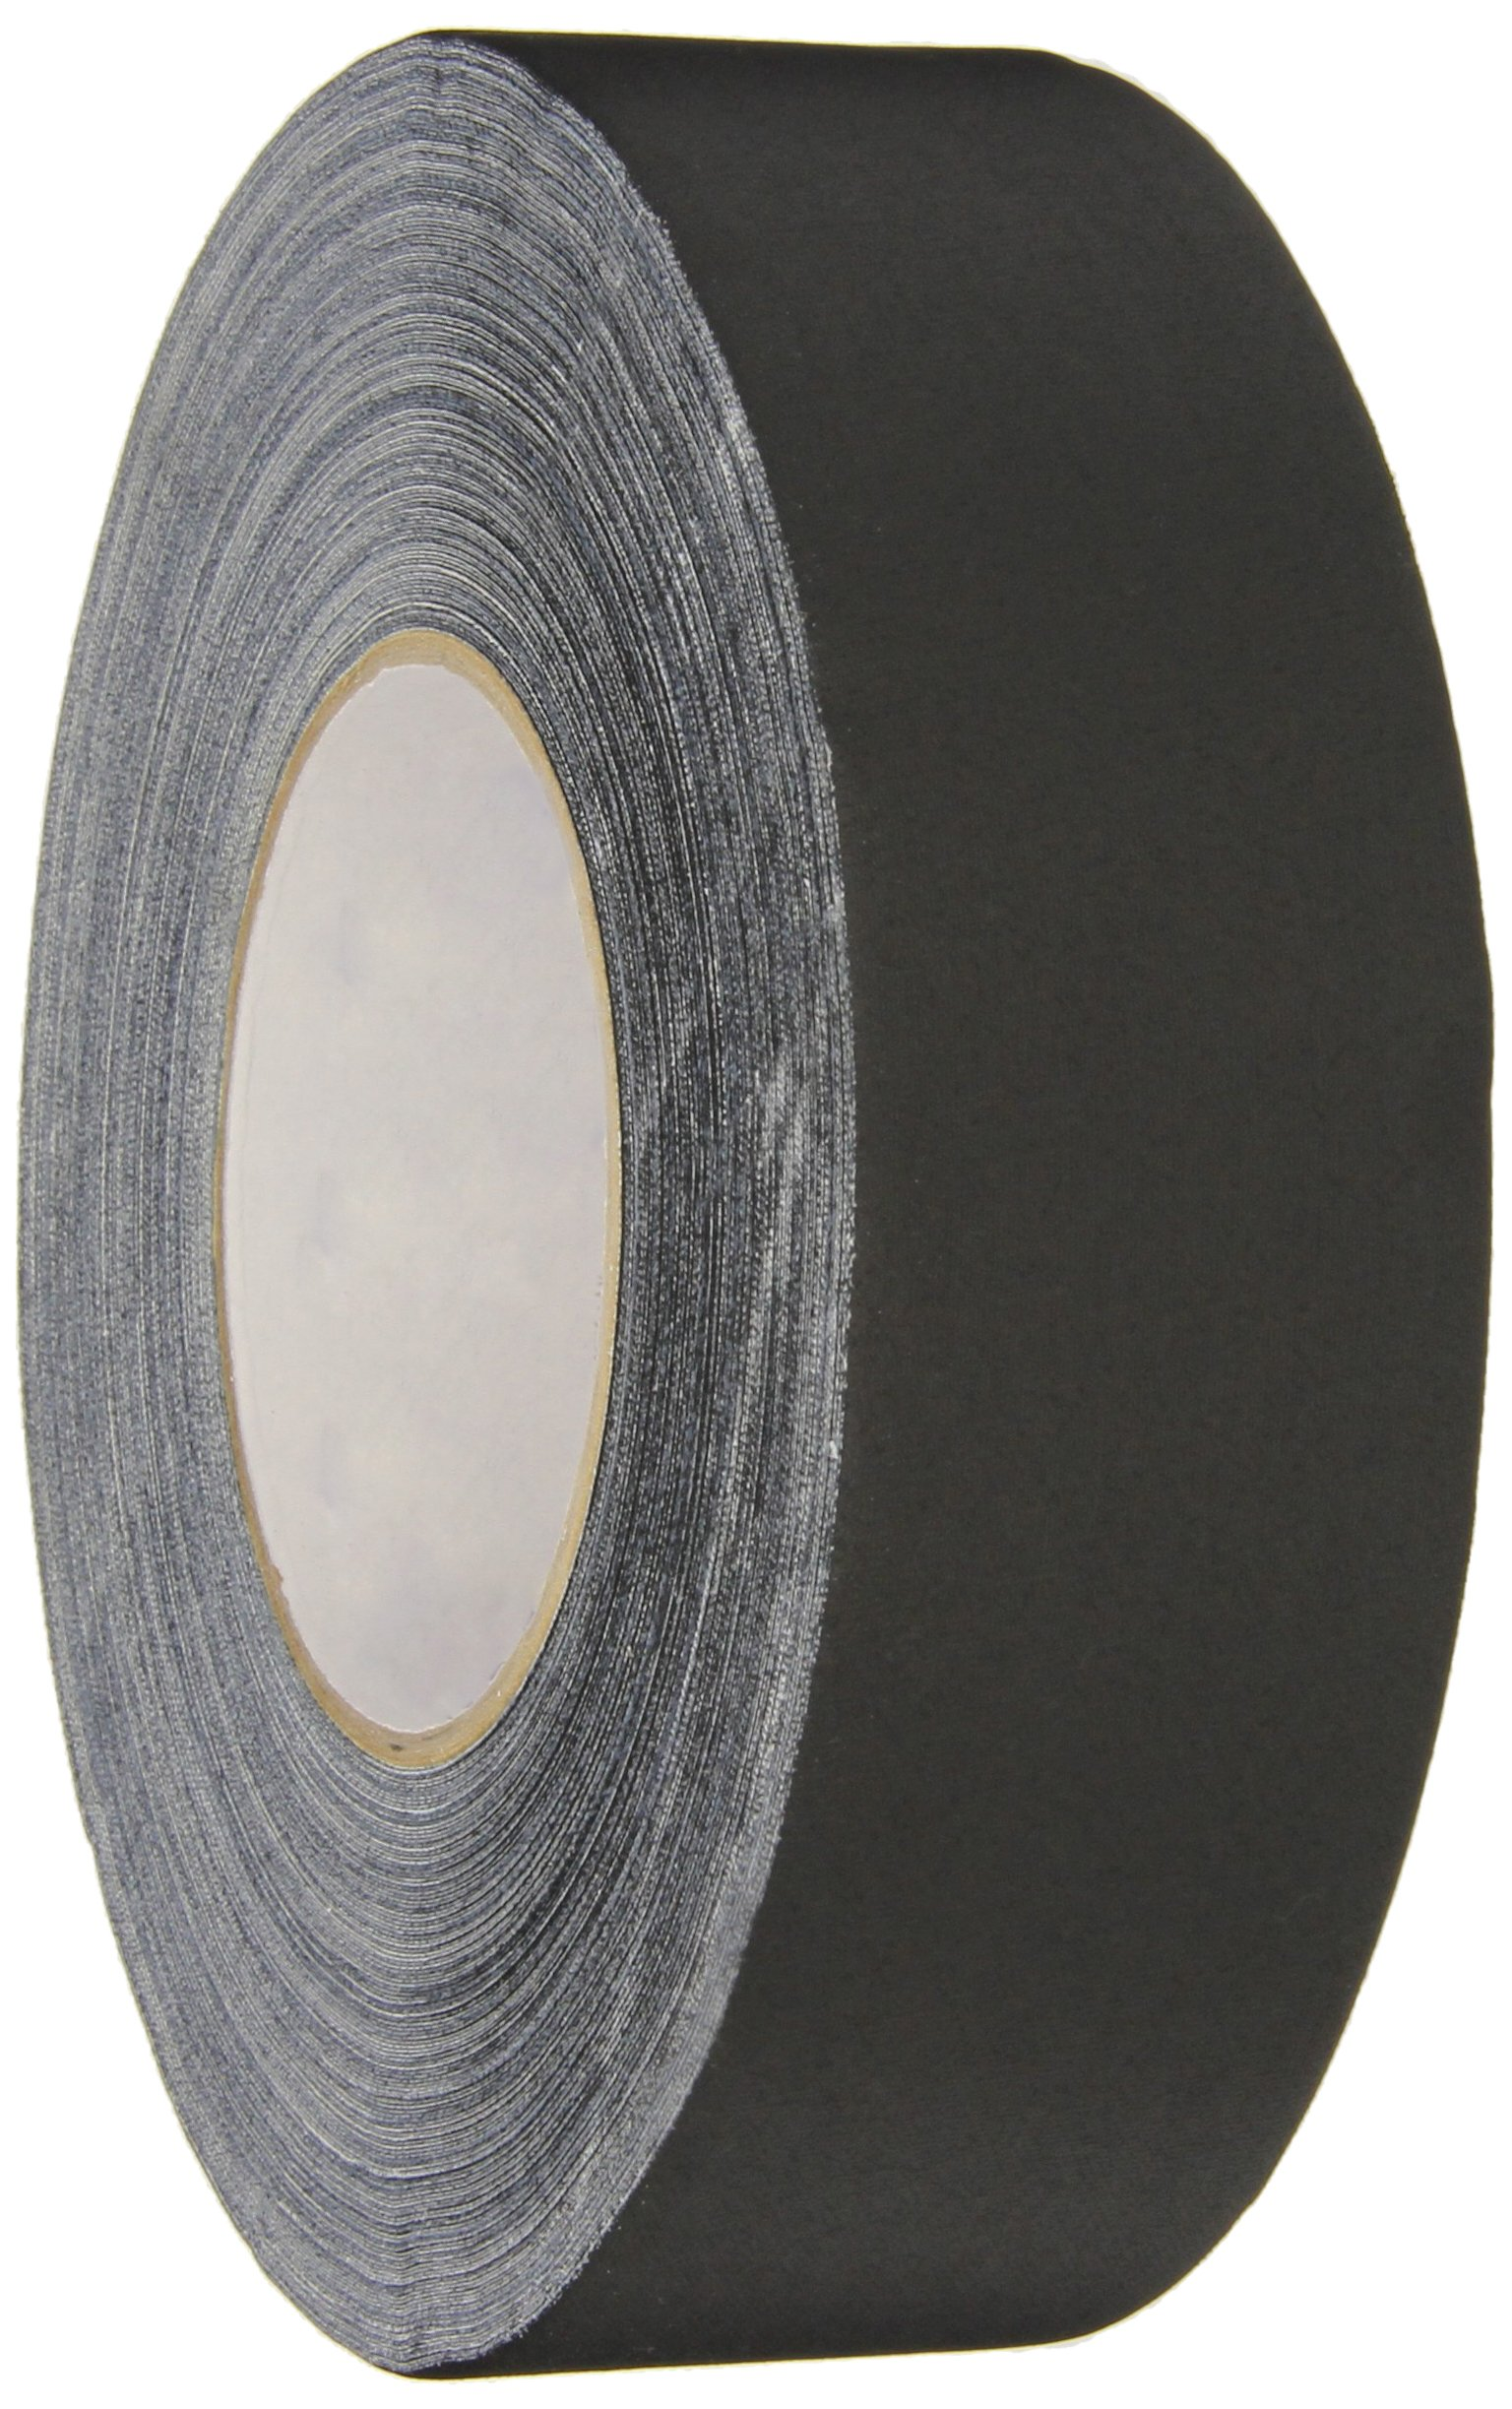 Polyken 510 Vinyl Coated Cloth Premium Gaffer's Tape, 11.5 mil Thick, 50m Length, 48mm Width, Black